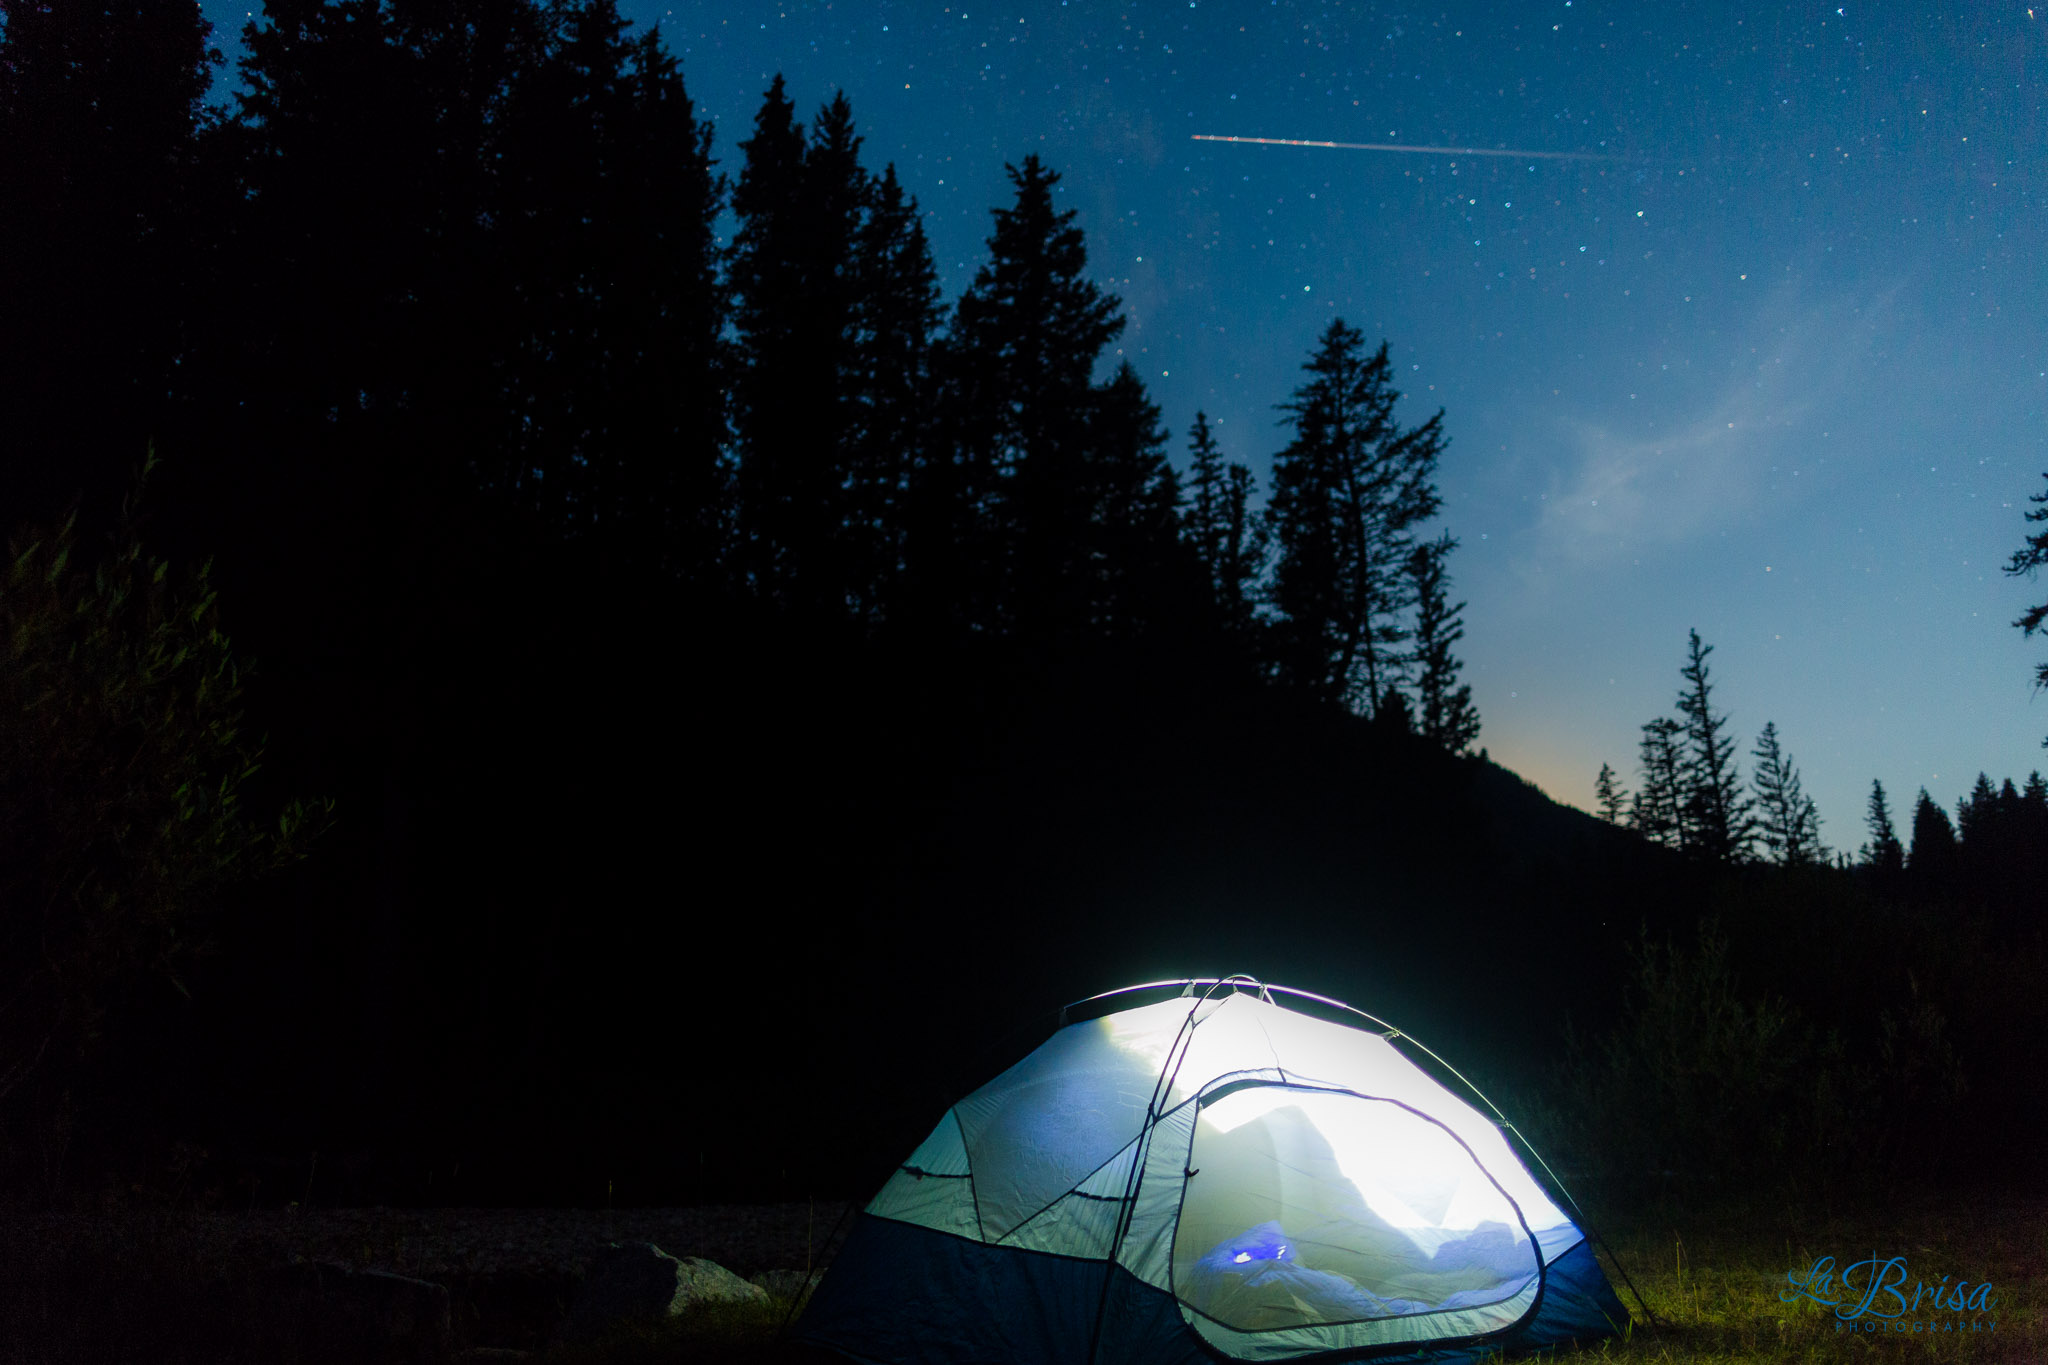 North Face Tent Under Stars